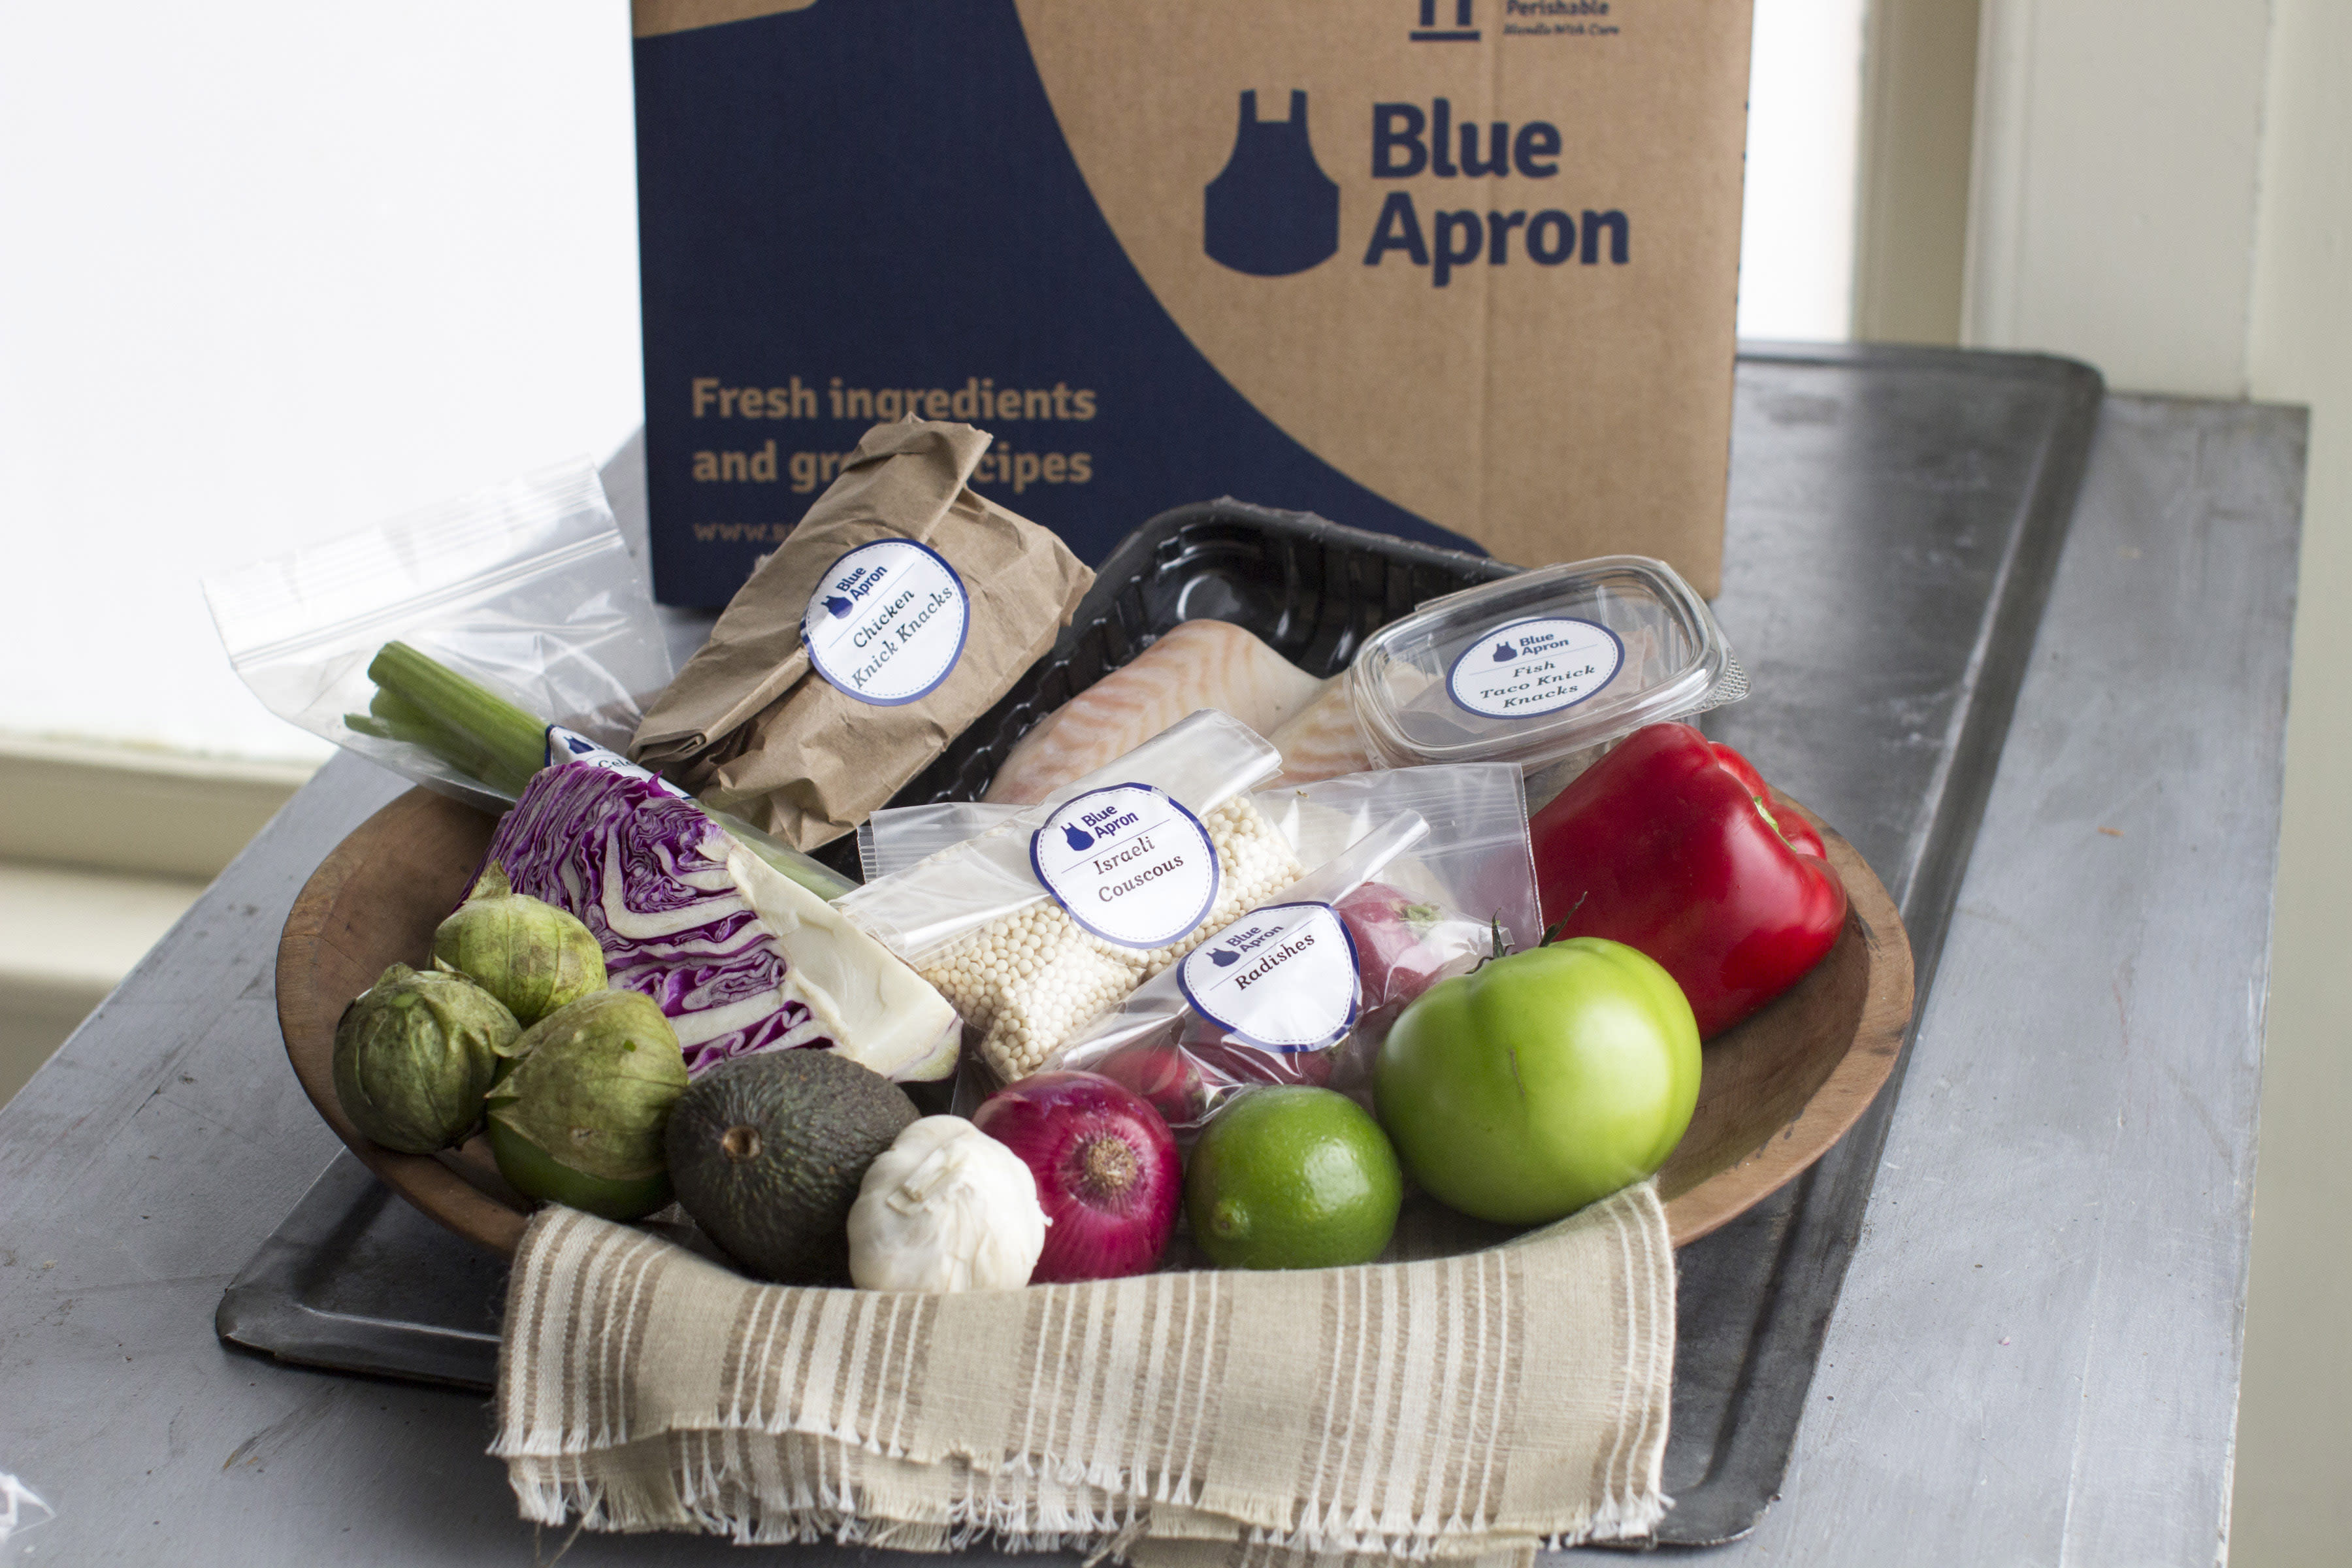 Blue apron valuation